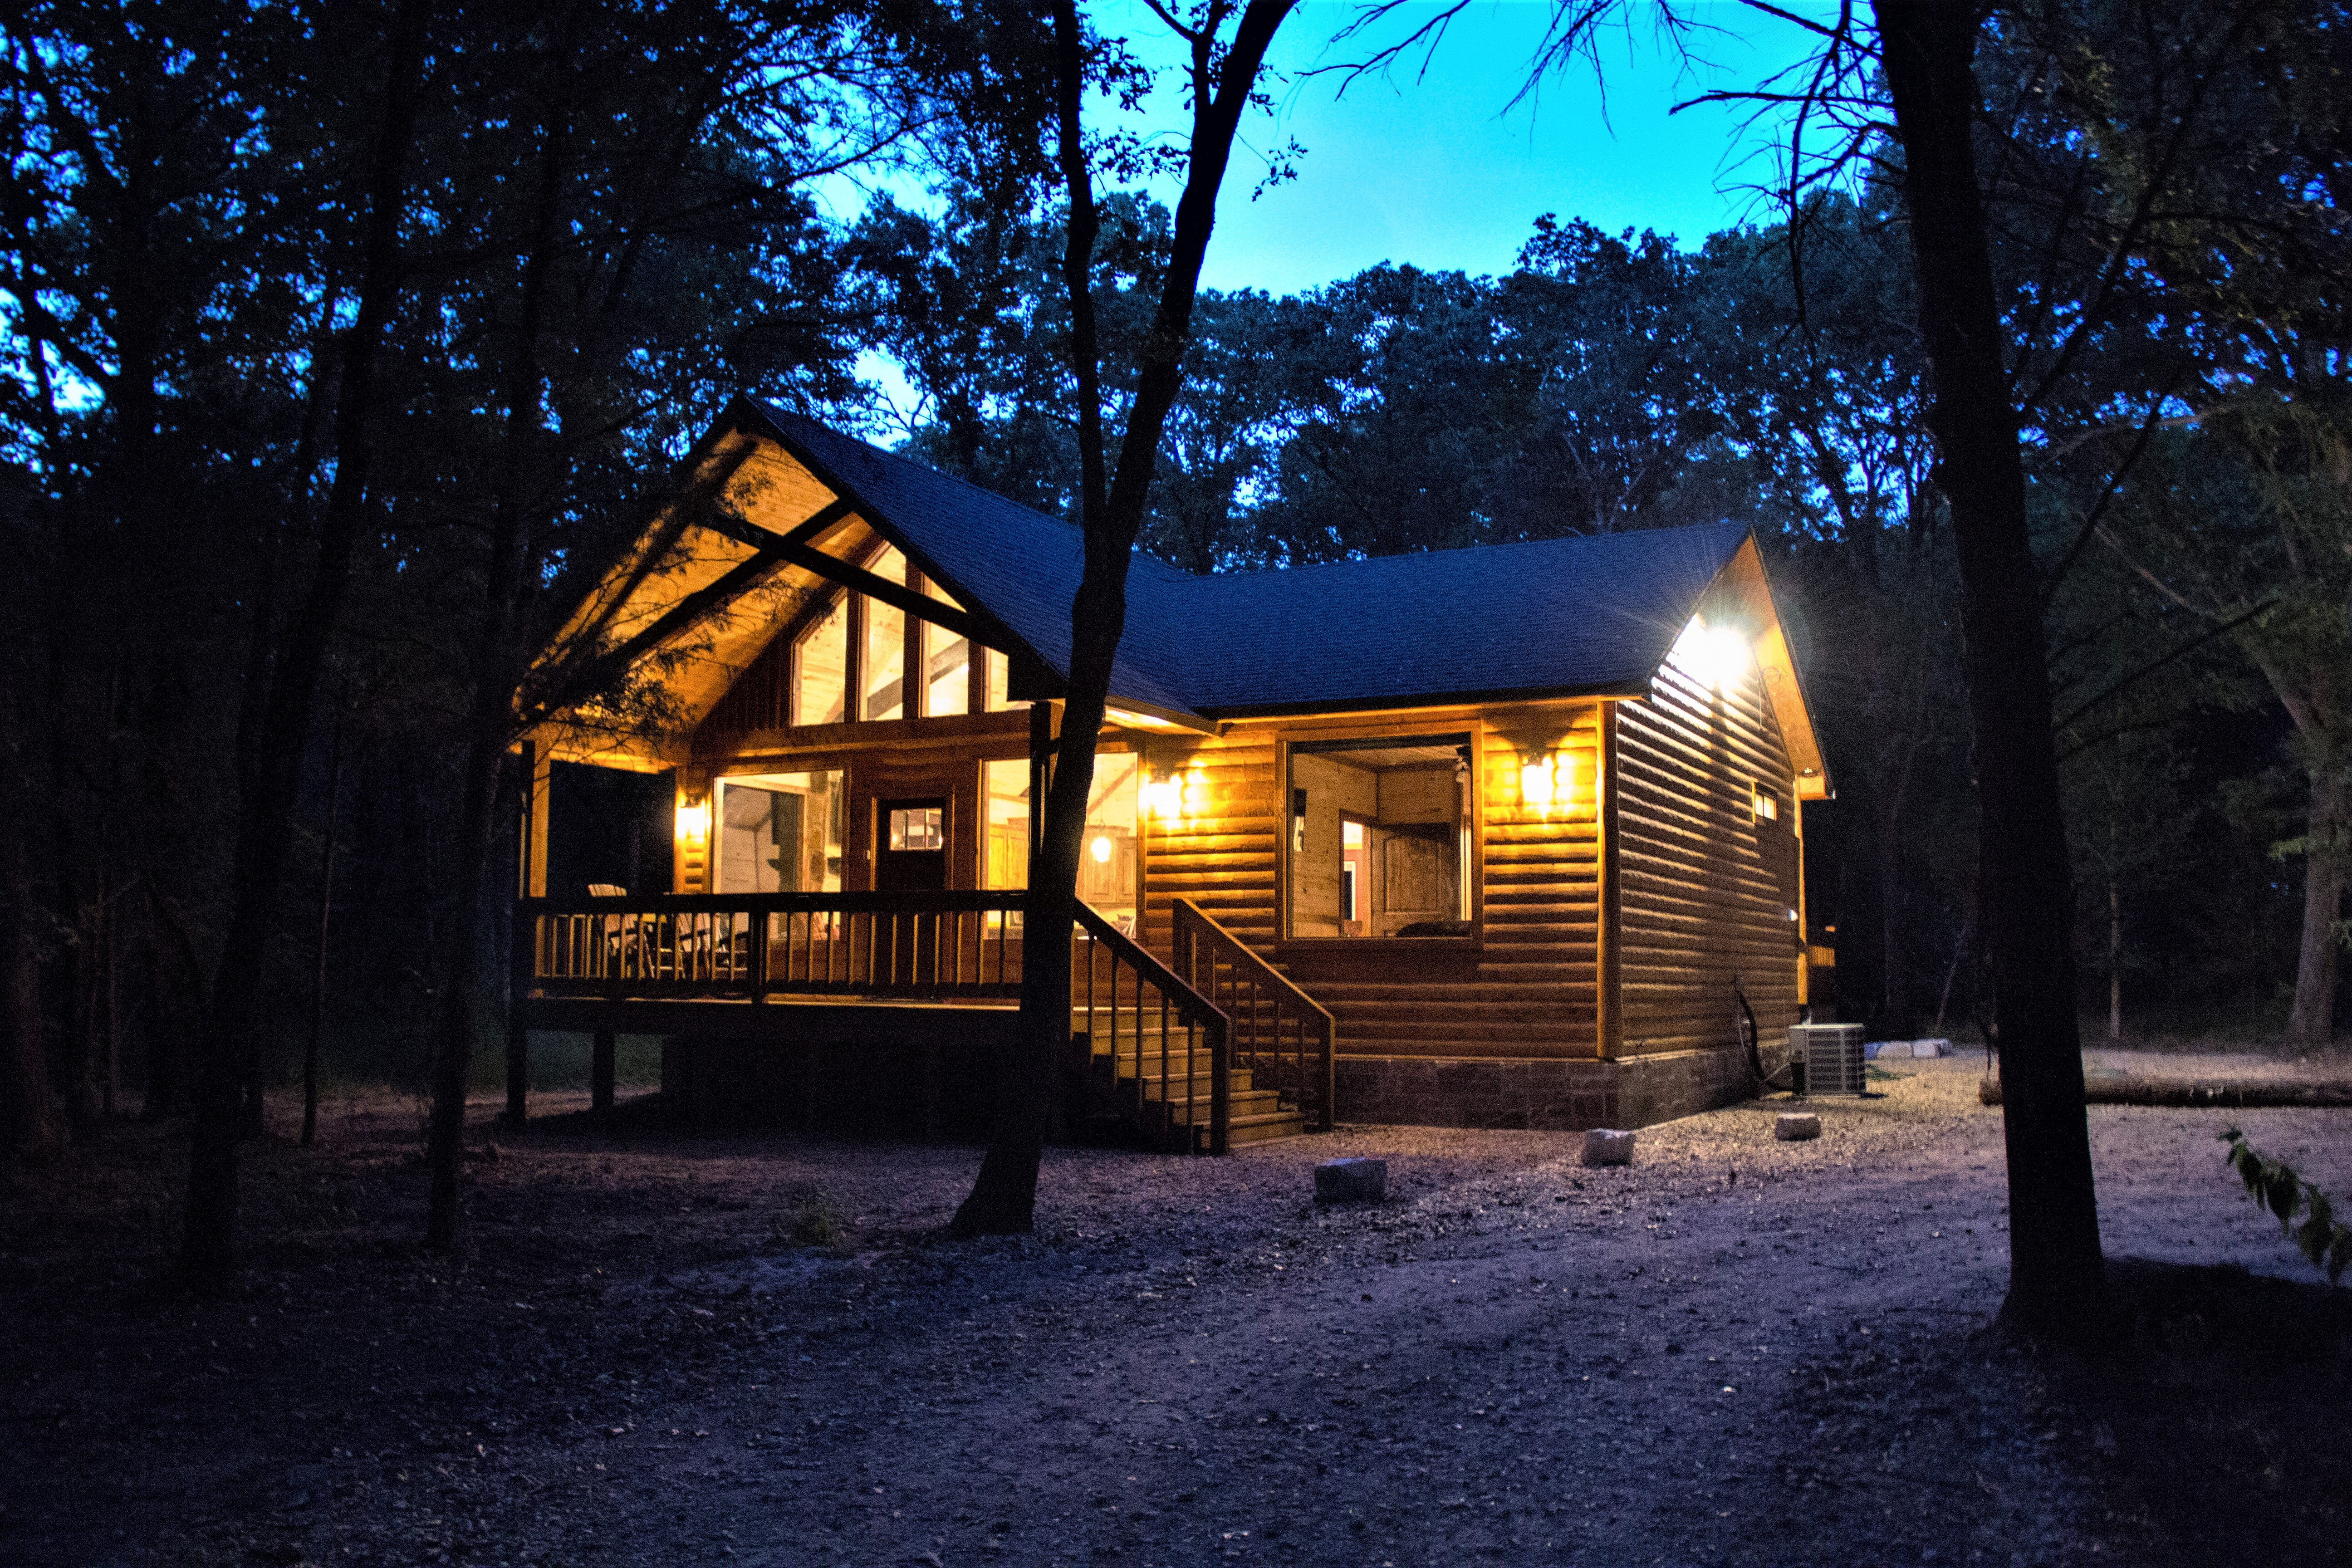 washington blog state cabin large fixedw in cozy point treehouse cabins trover getaways